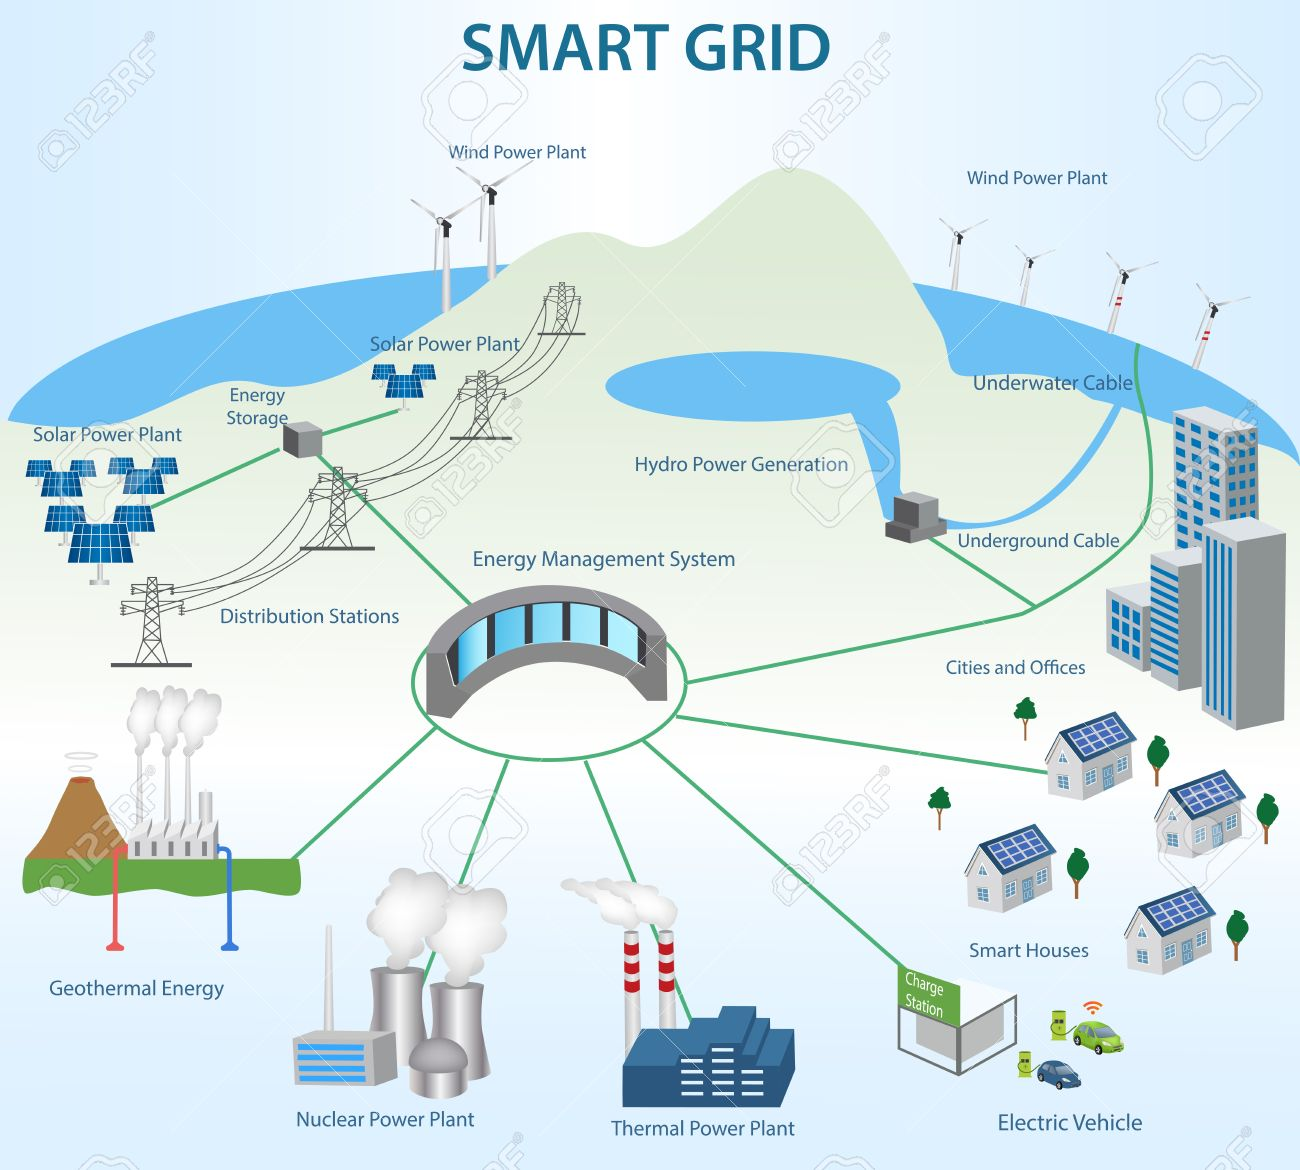 hight resolution of smart grid concept industrial and smart grid devices in a connected network renewable energy and